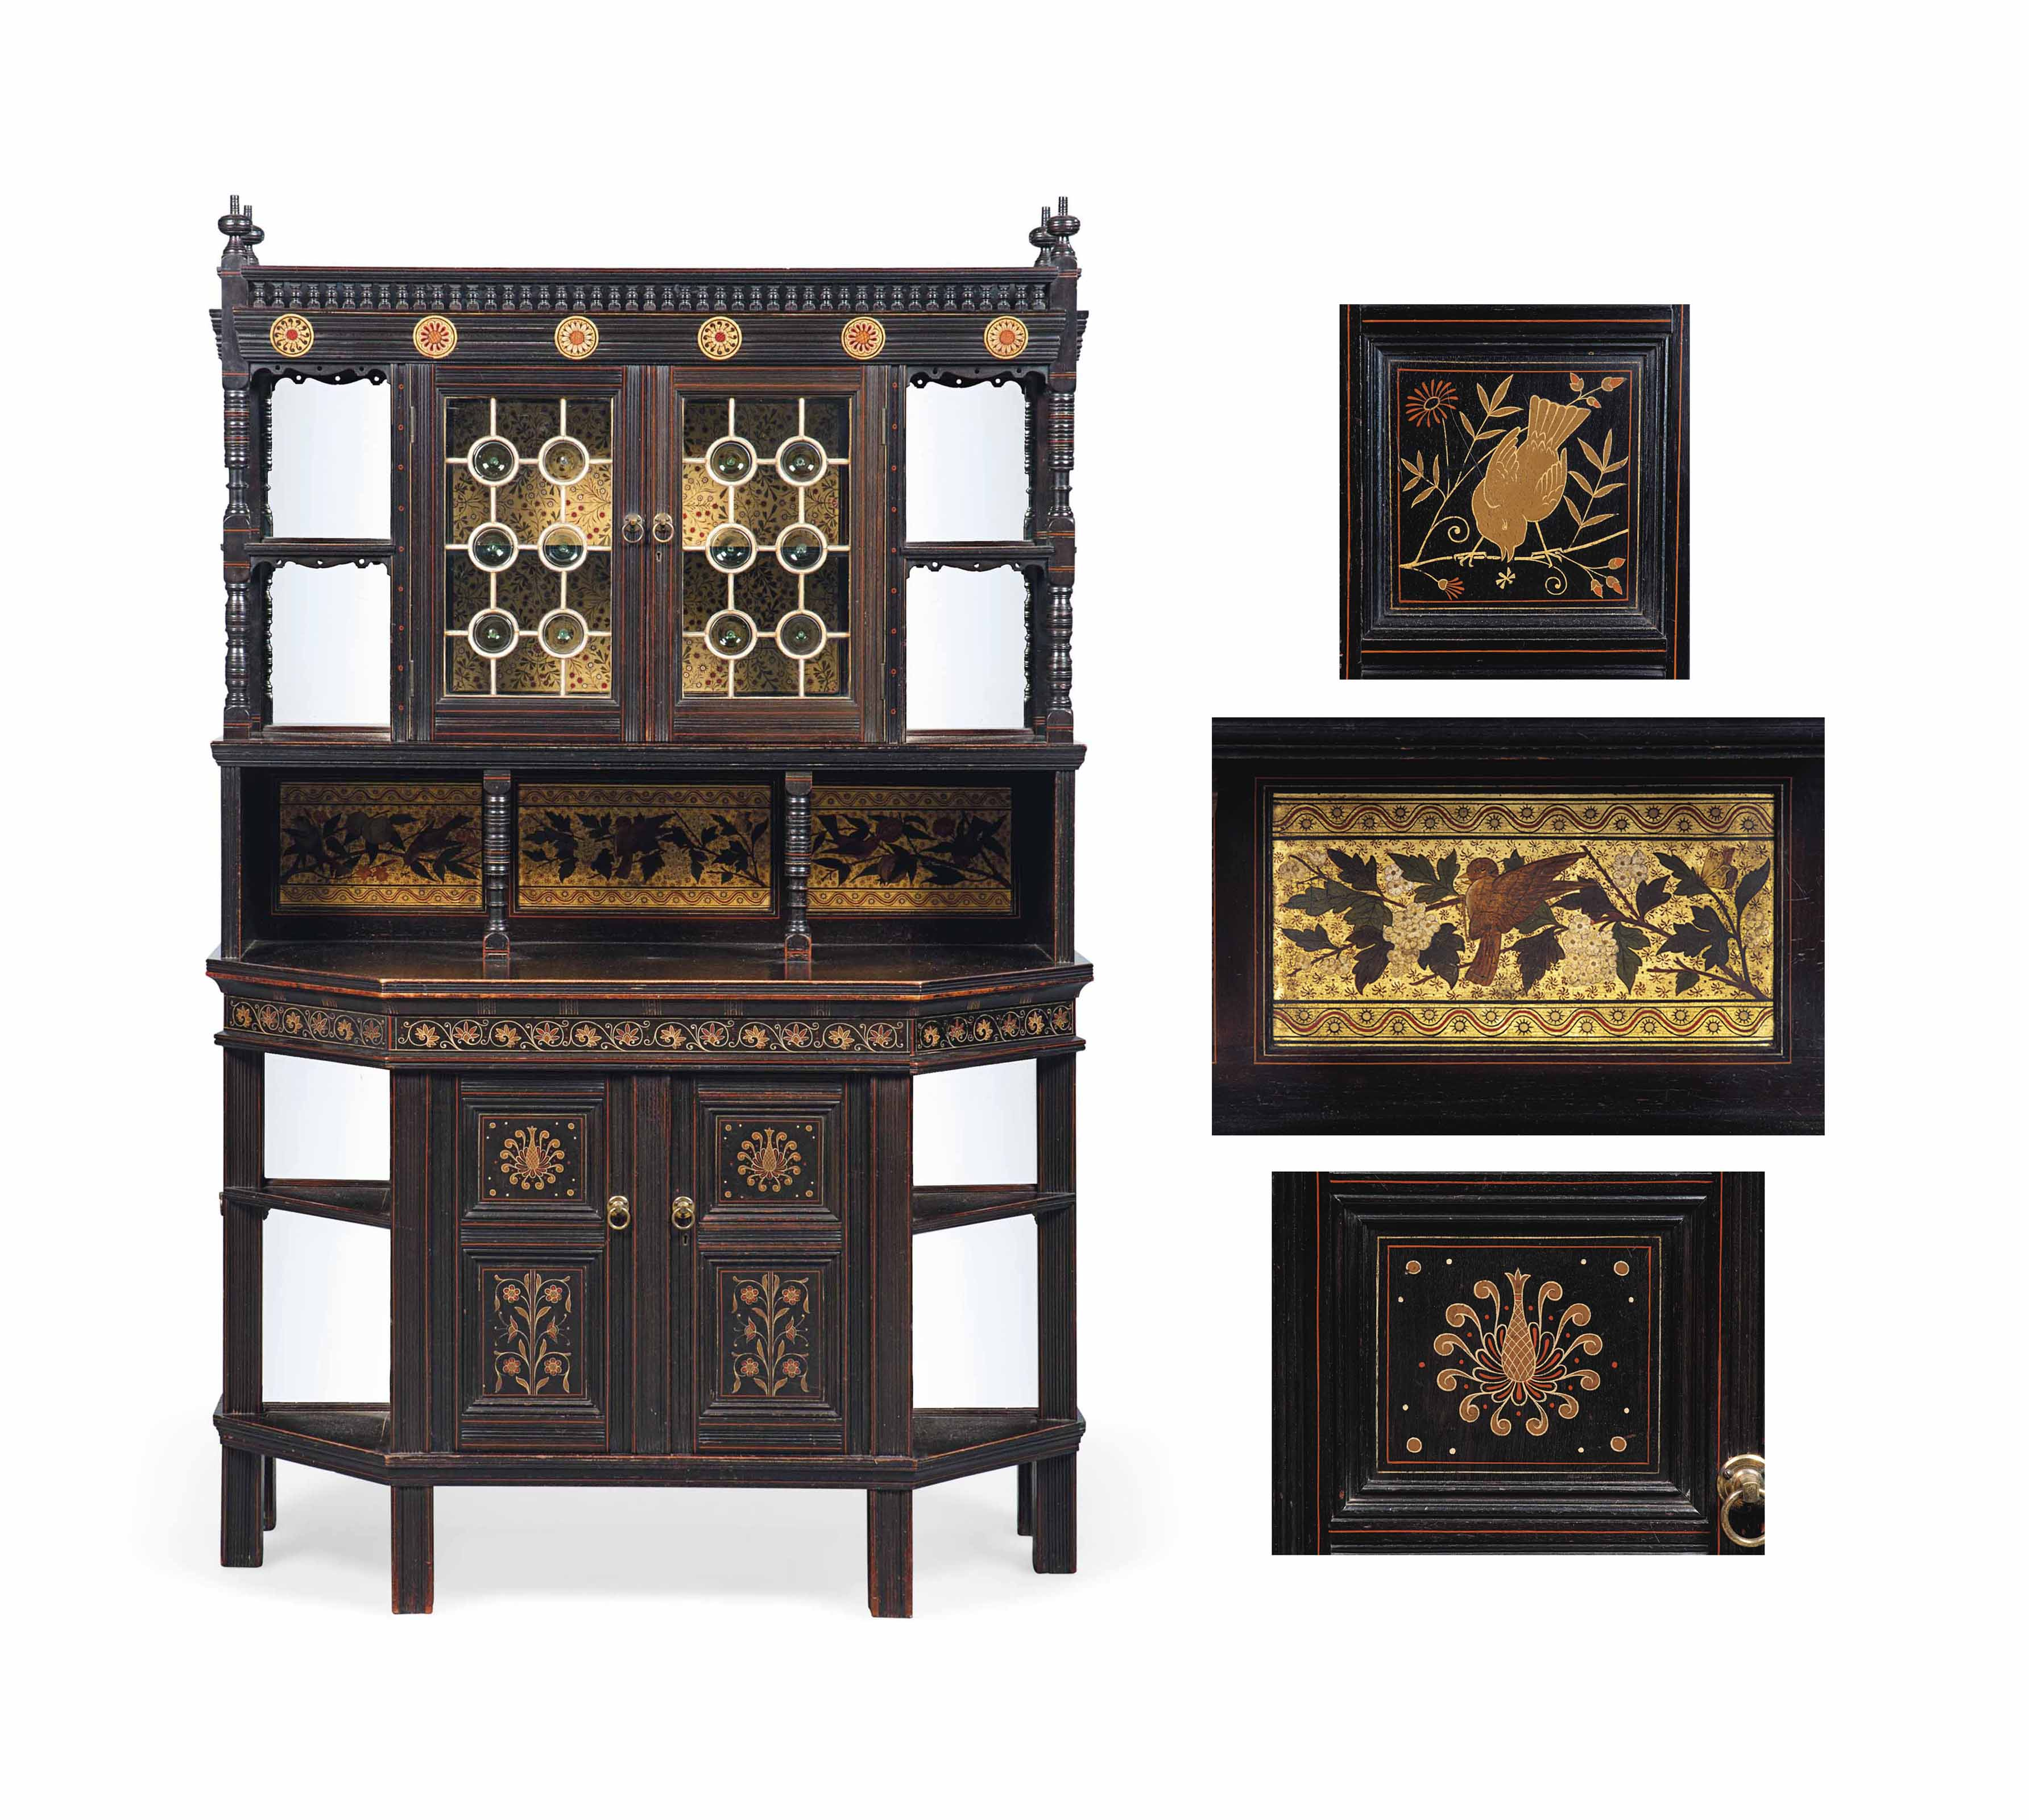 A DANIEL COTTIER (1837-1891) EBONISED WOOD AND DECORATED CABINET